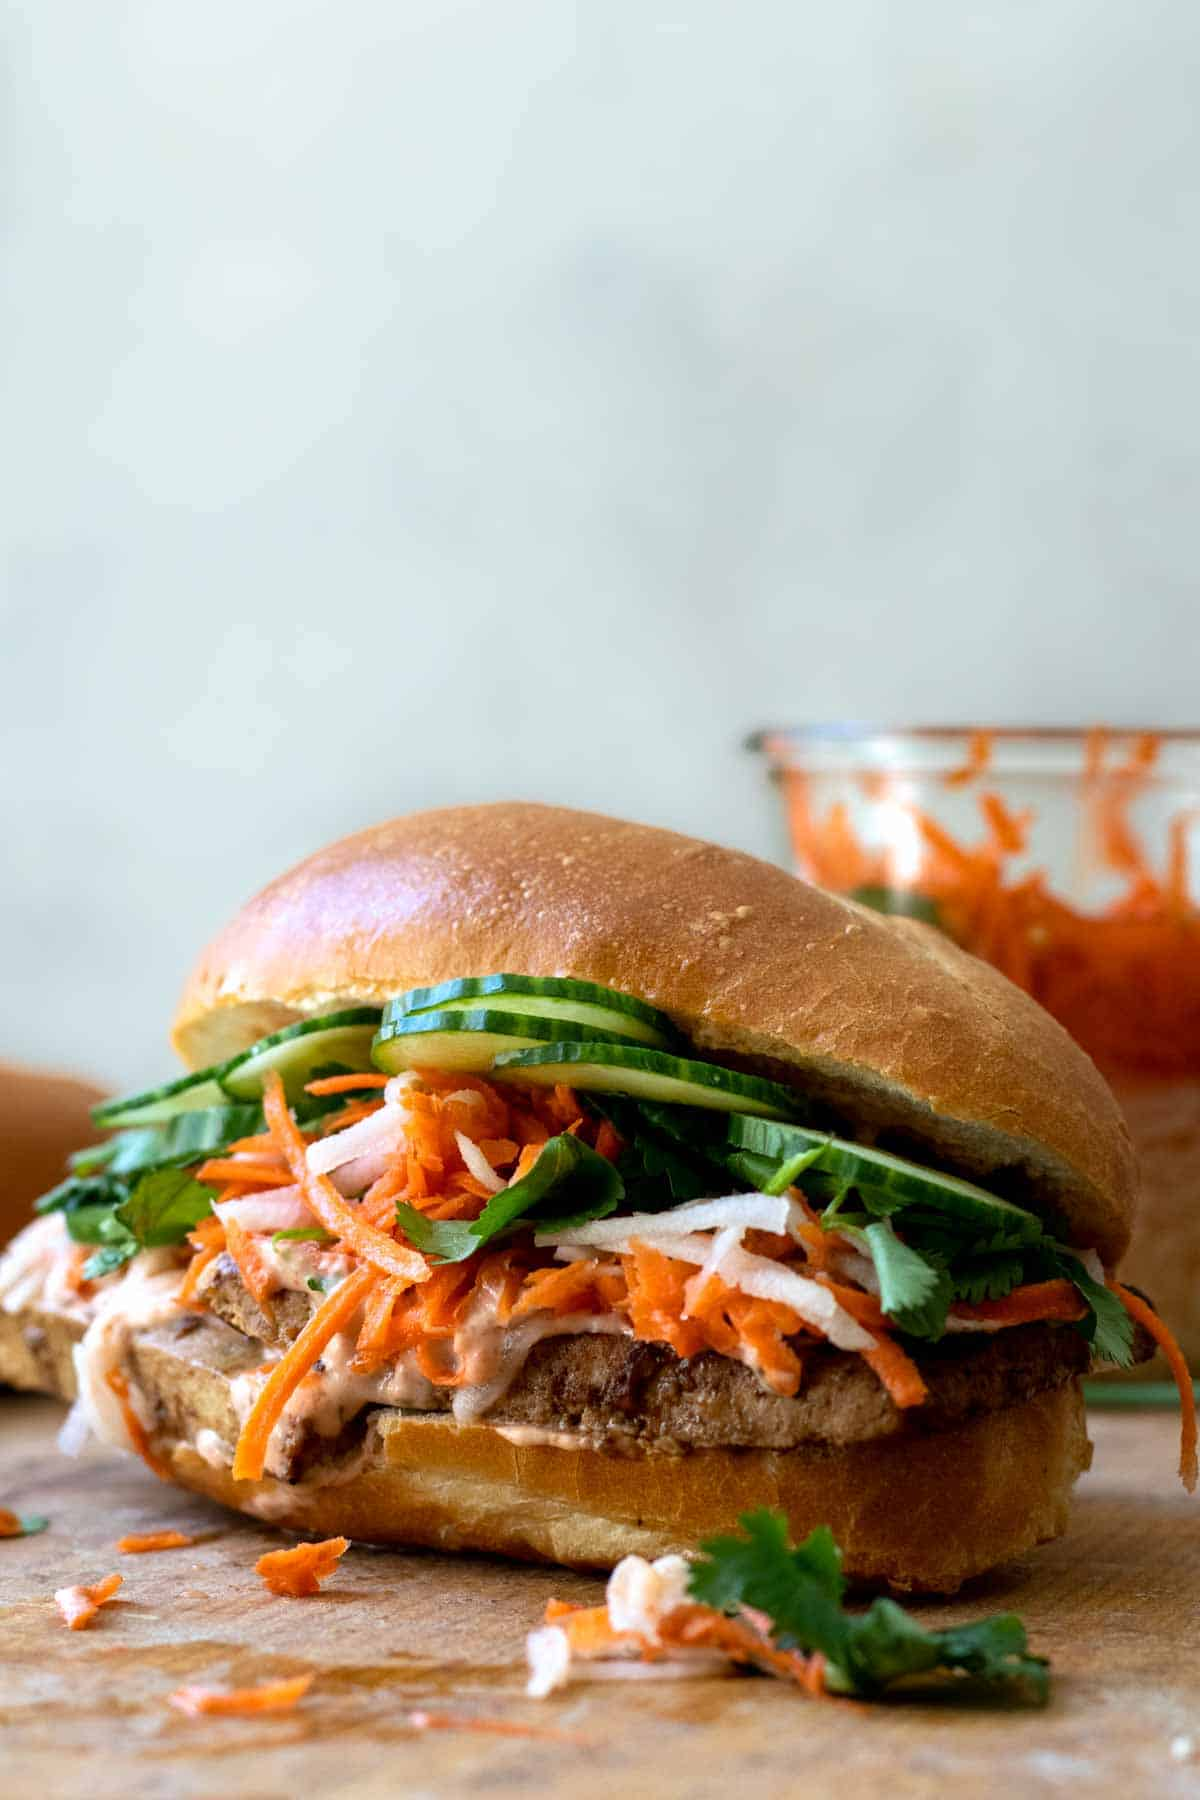 Tofu banh mi sandwich on wood cutting board with jar of quick pickled vegetables behind it.